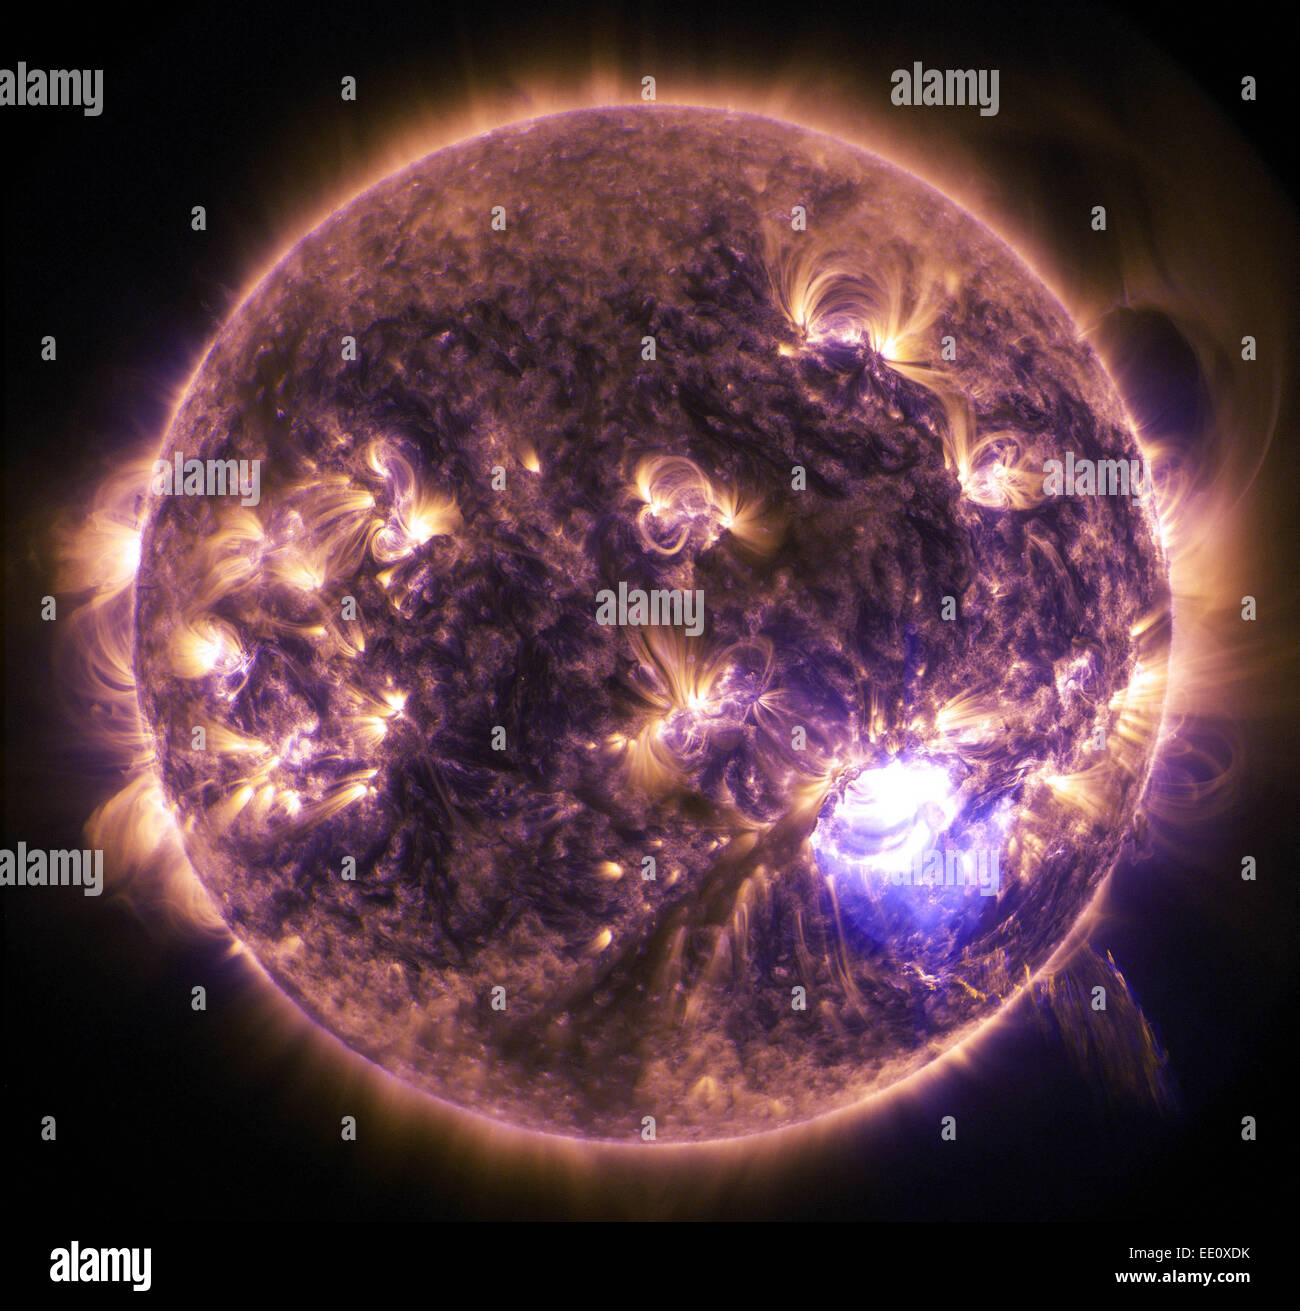 X1.8-Class Solar Flare, seen from space Dec. 19, 2014 - Stock Image